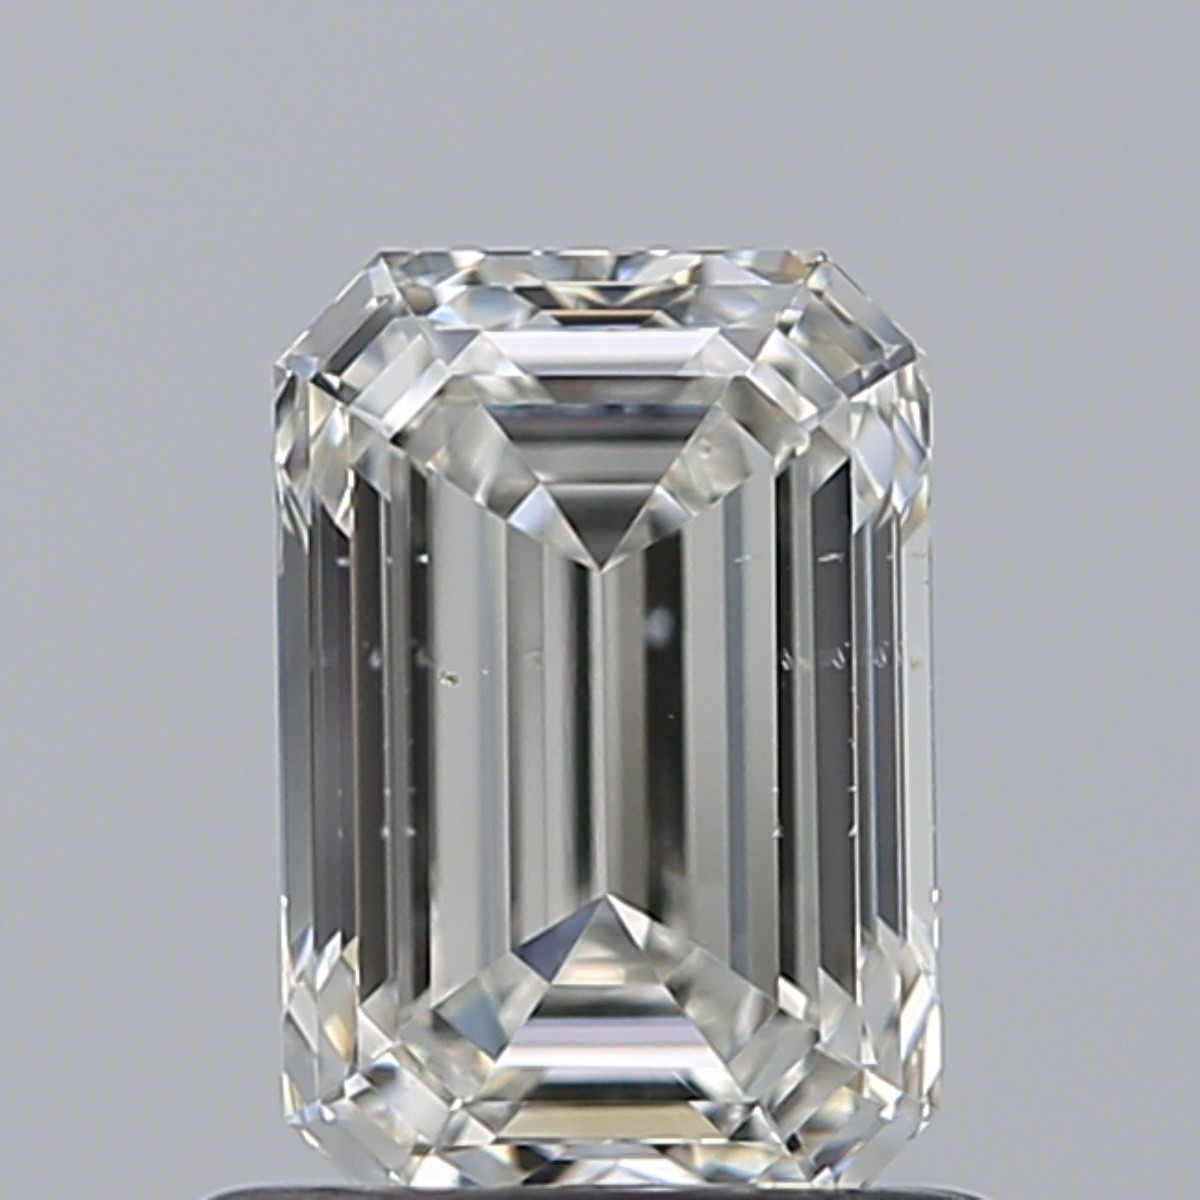 1.01 Carat Emerald Diamond (H/SI1)